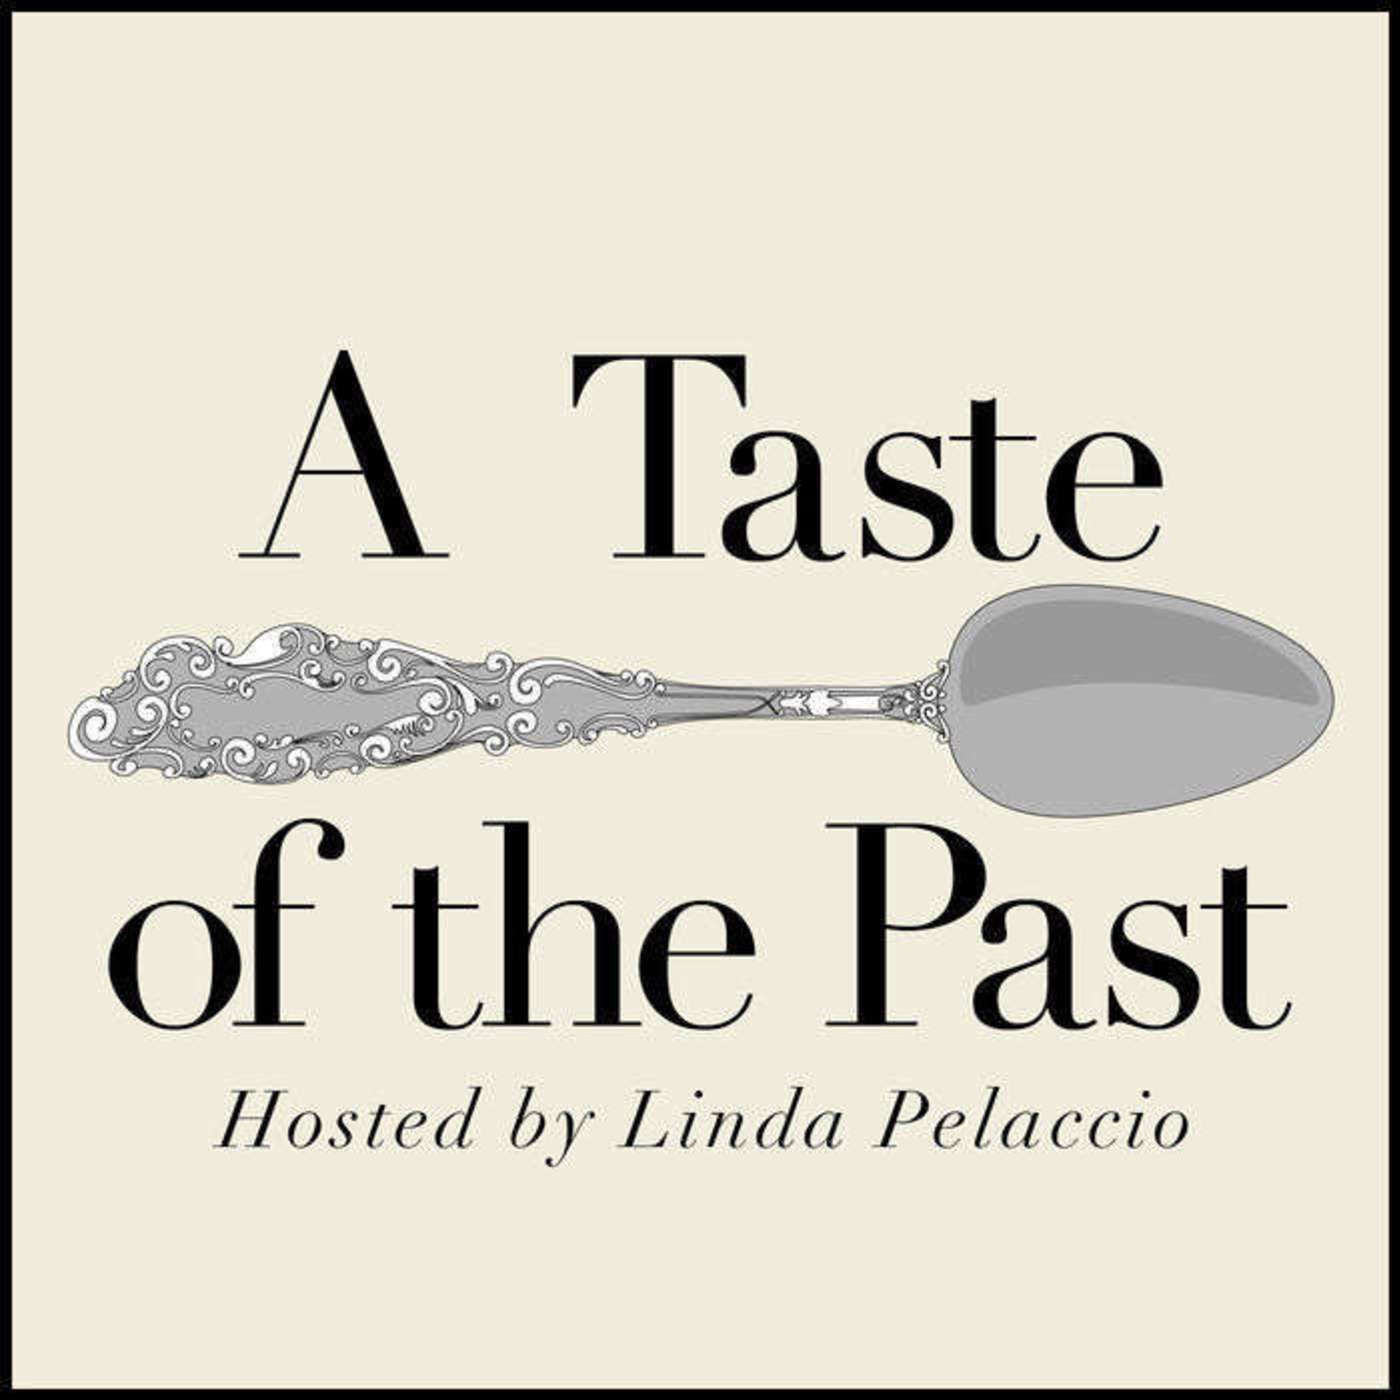 Episode 13: Asian Food Culture with Danielle Chang